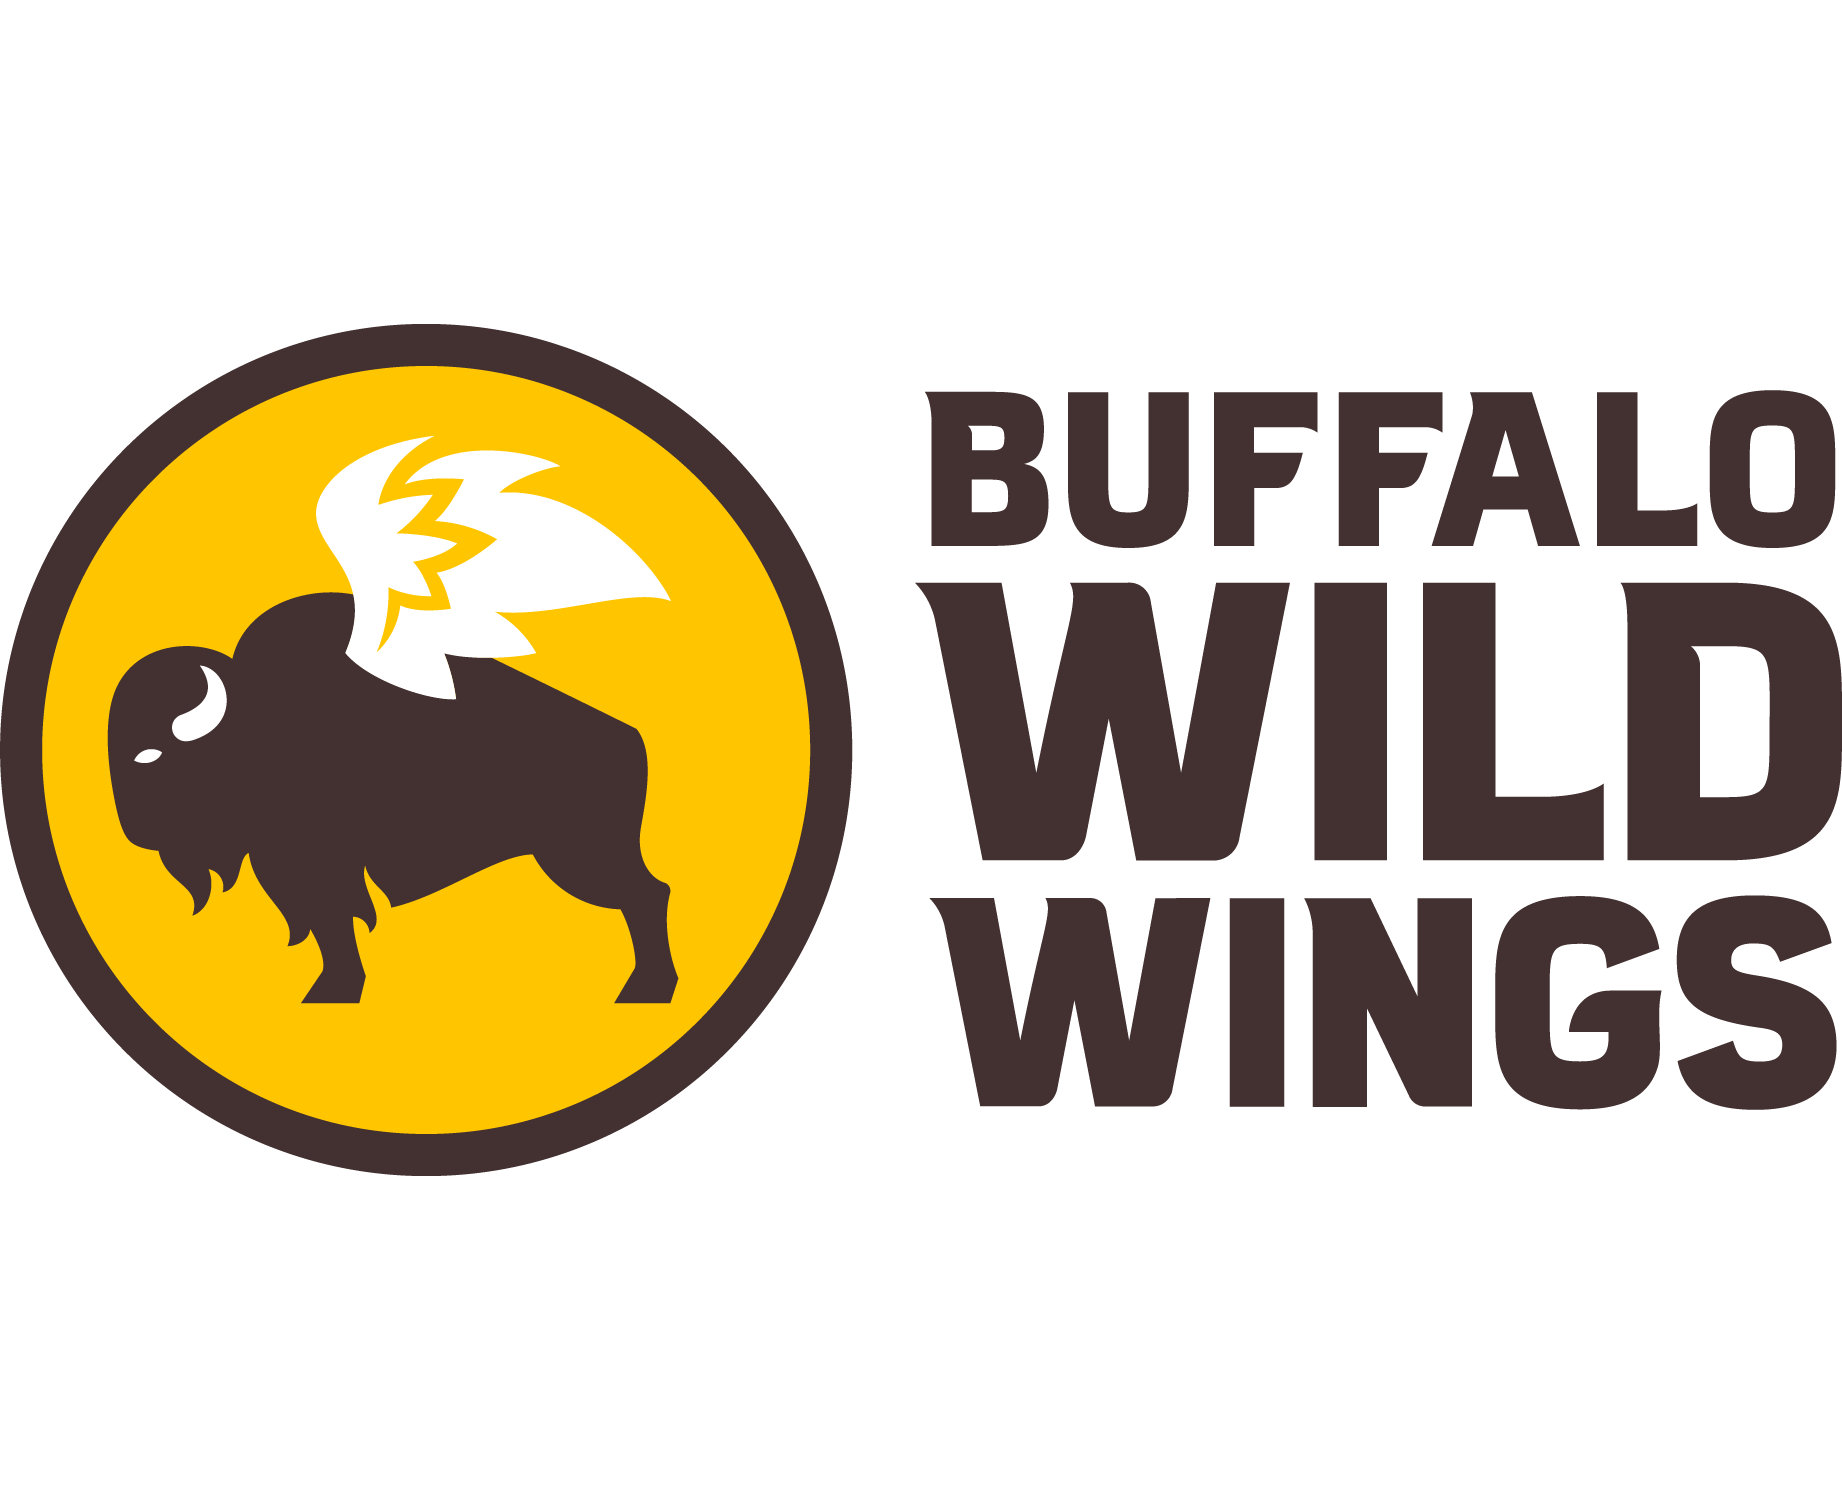 Trusted By _Buffalo Wild Wings.png